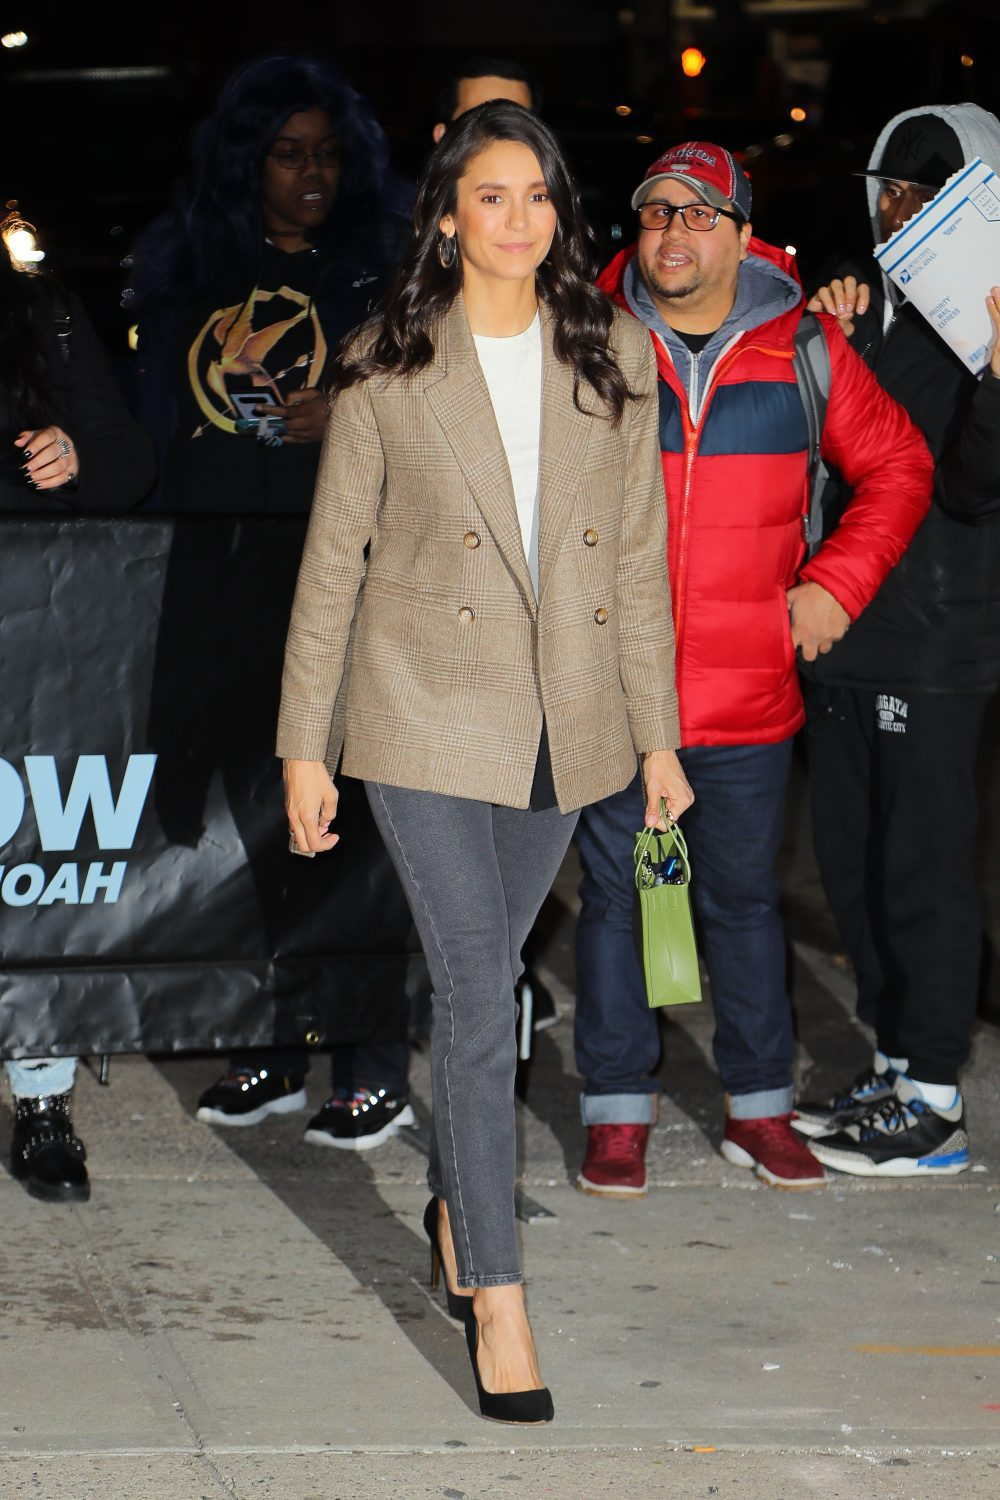 Nina Dobrev arrives at the Daily Show in New York City